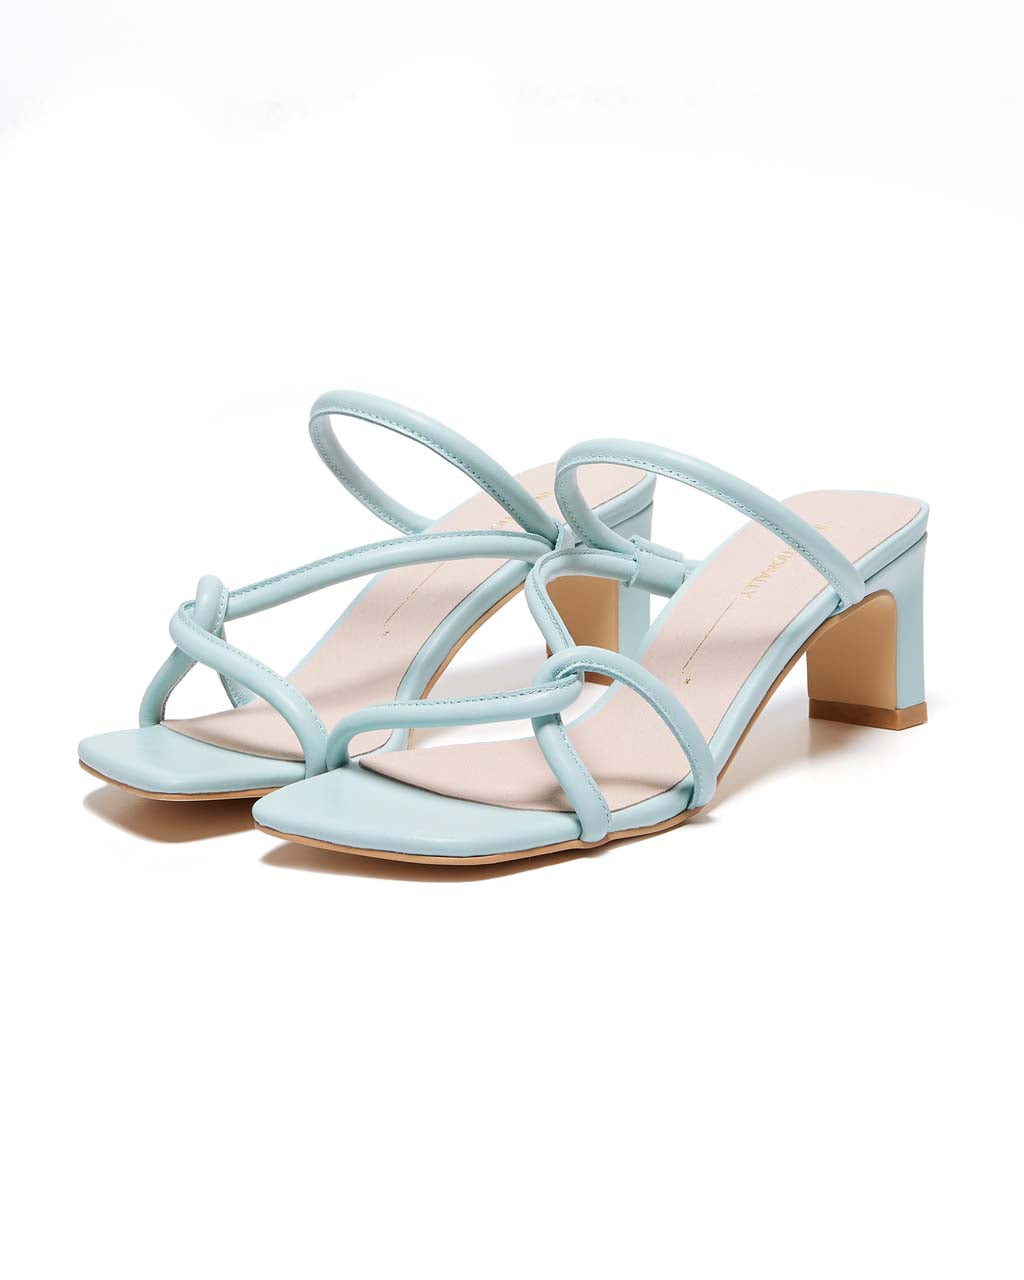 Willow Sandal - Baby Blue